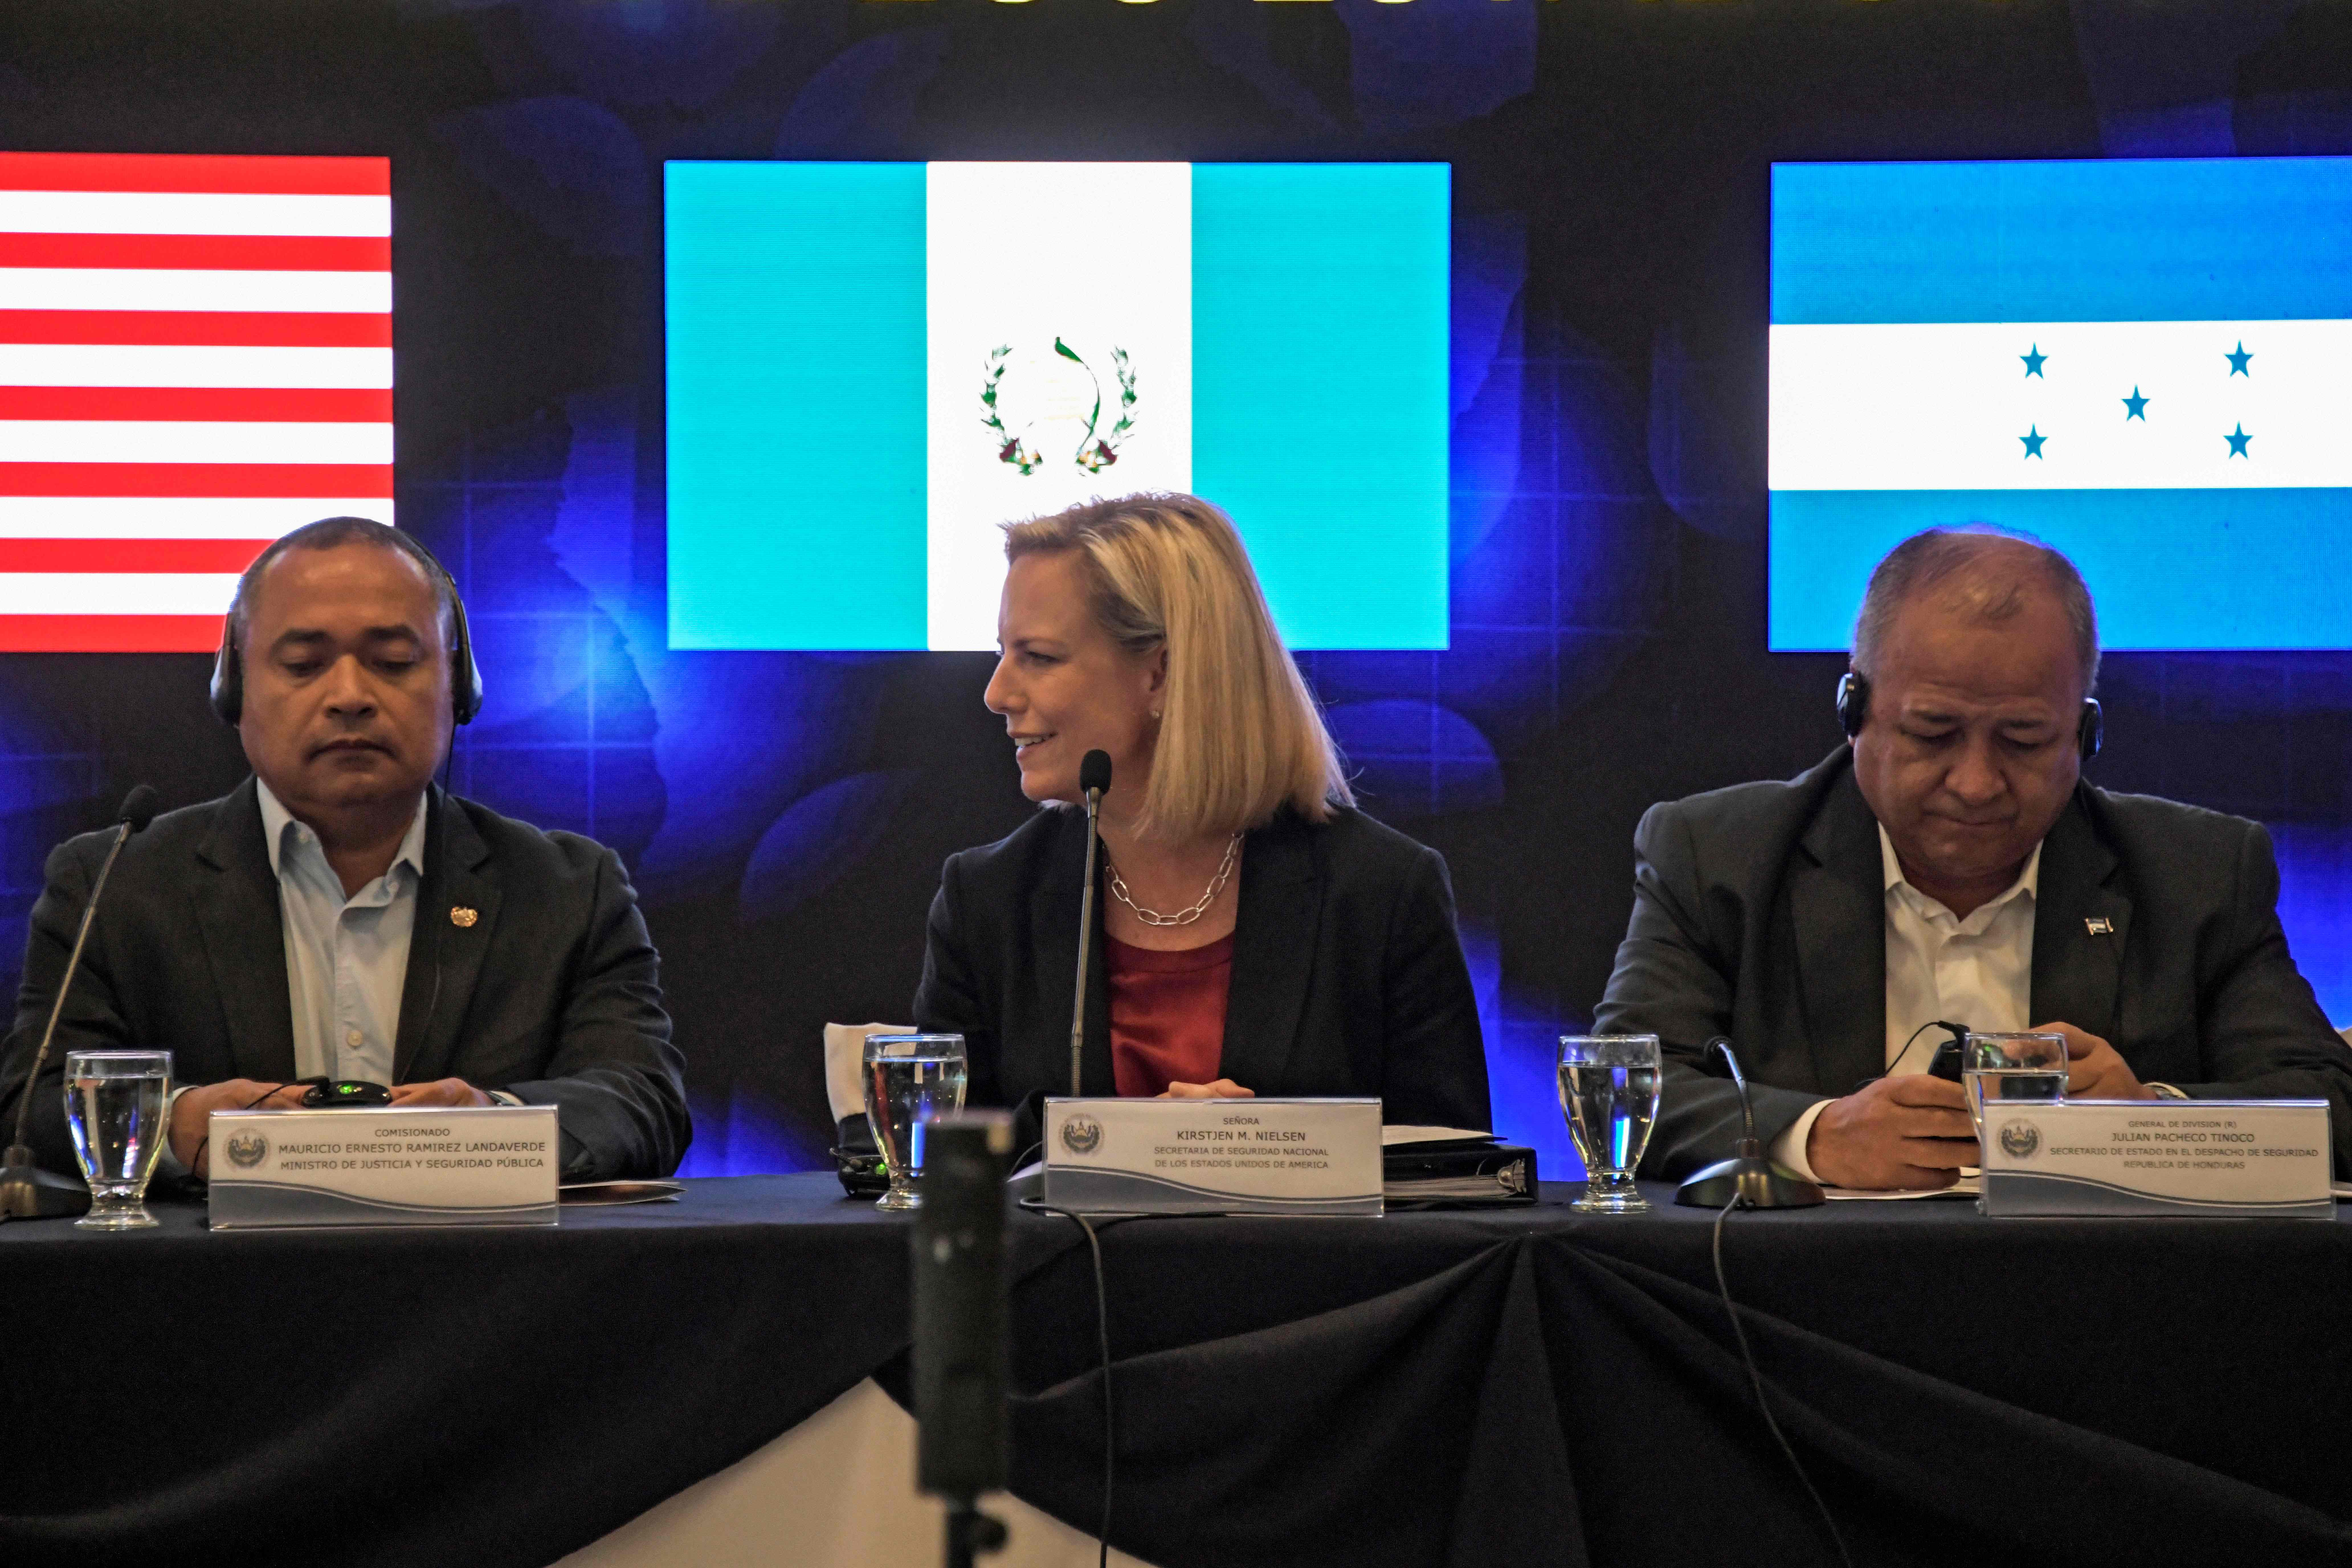 """United States Secretary of Homeland Security (DHS) Kirstjen Nielsen (C) Honduran Security Minister Julian Pacheco Tinoco (R) and El Salvador's Security Minister Mauricio Ramirez Landaverde, attend the opening of the fourth meeting of security ministers of the """"Northern Triangle"""" in San Salvador, on February 20, 2019. - Nielsen called on Guatemala, El Salvador and Honduras security ministers to stop new caravans of migrants who illegally try to reach the US. (Photo by MARVIN RECINOS / AFP)"""